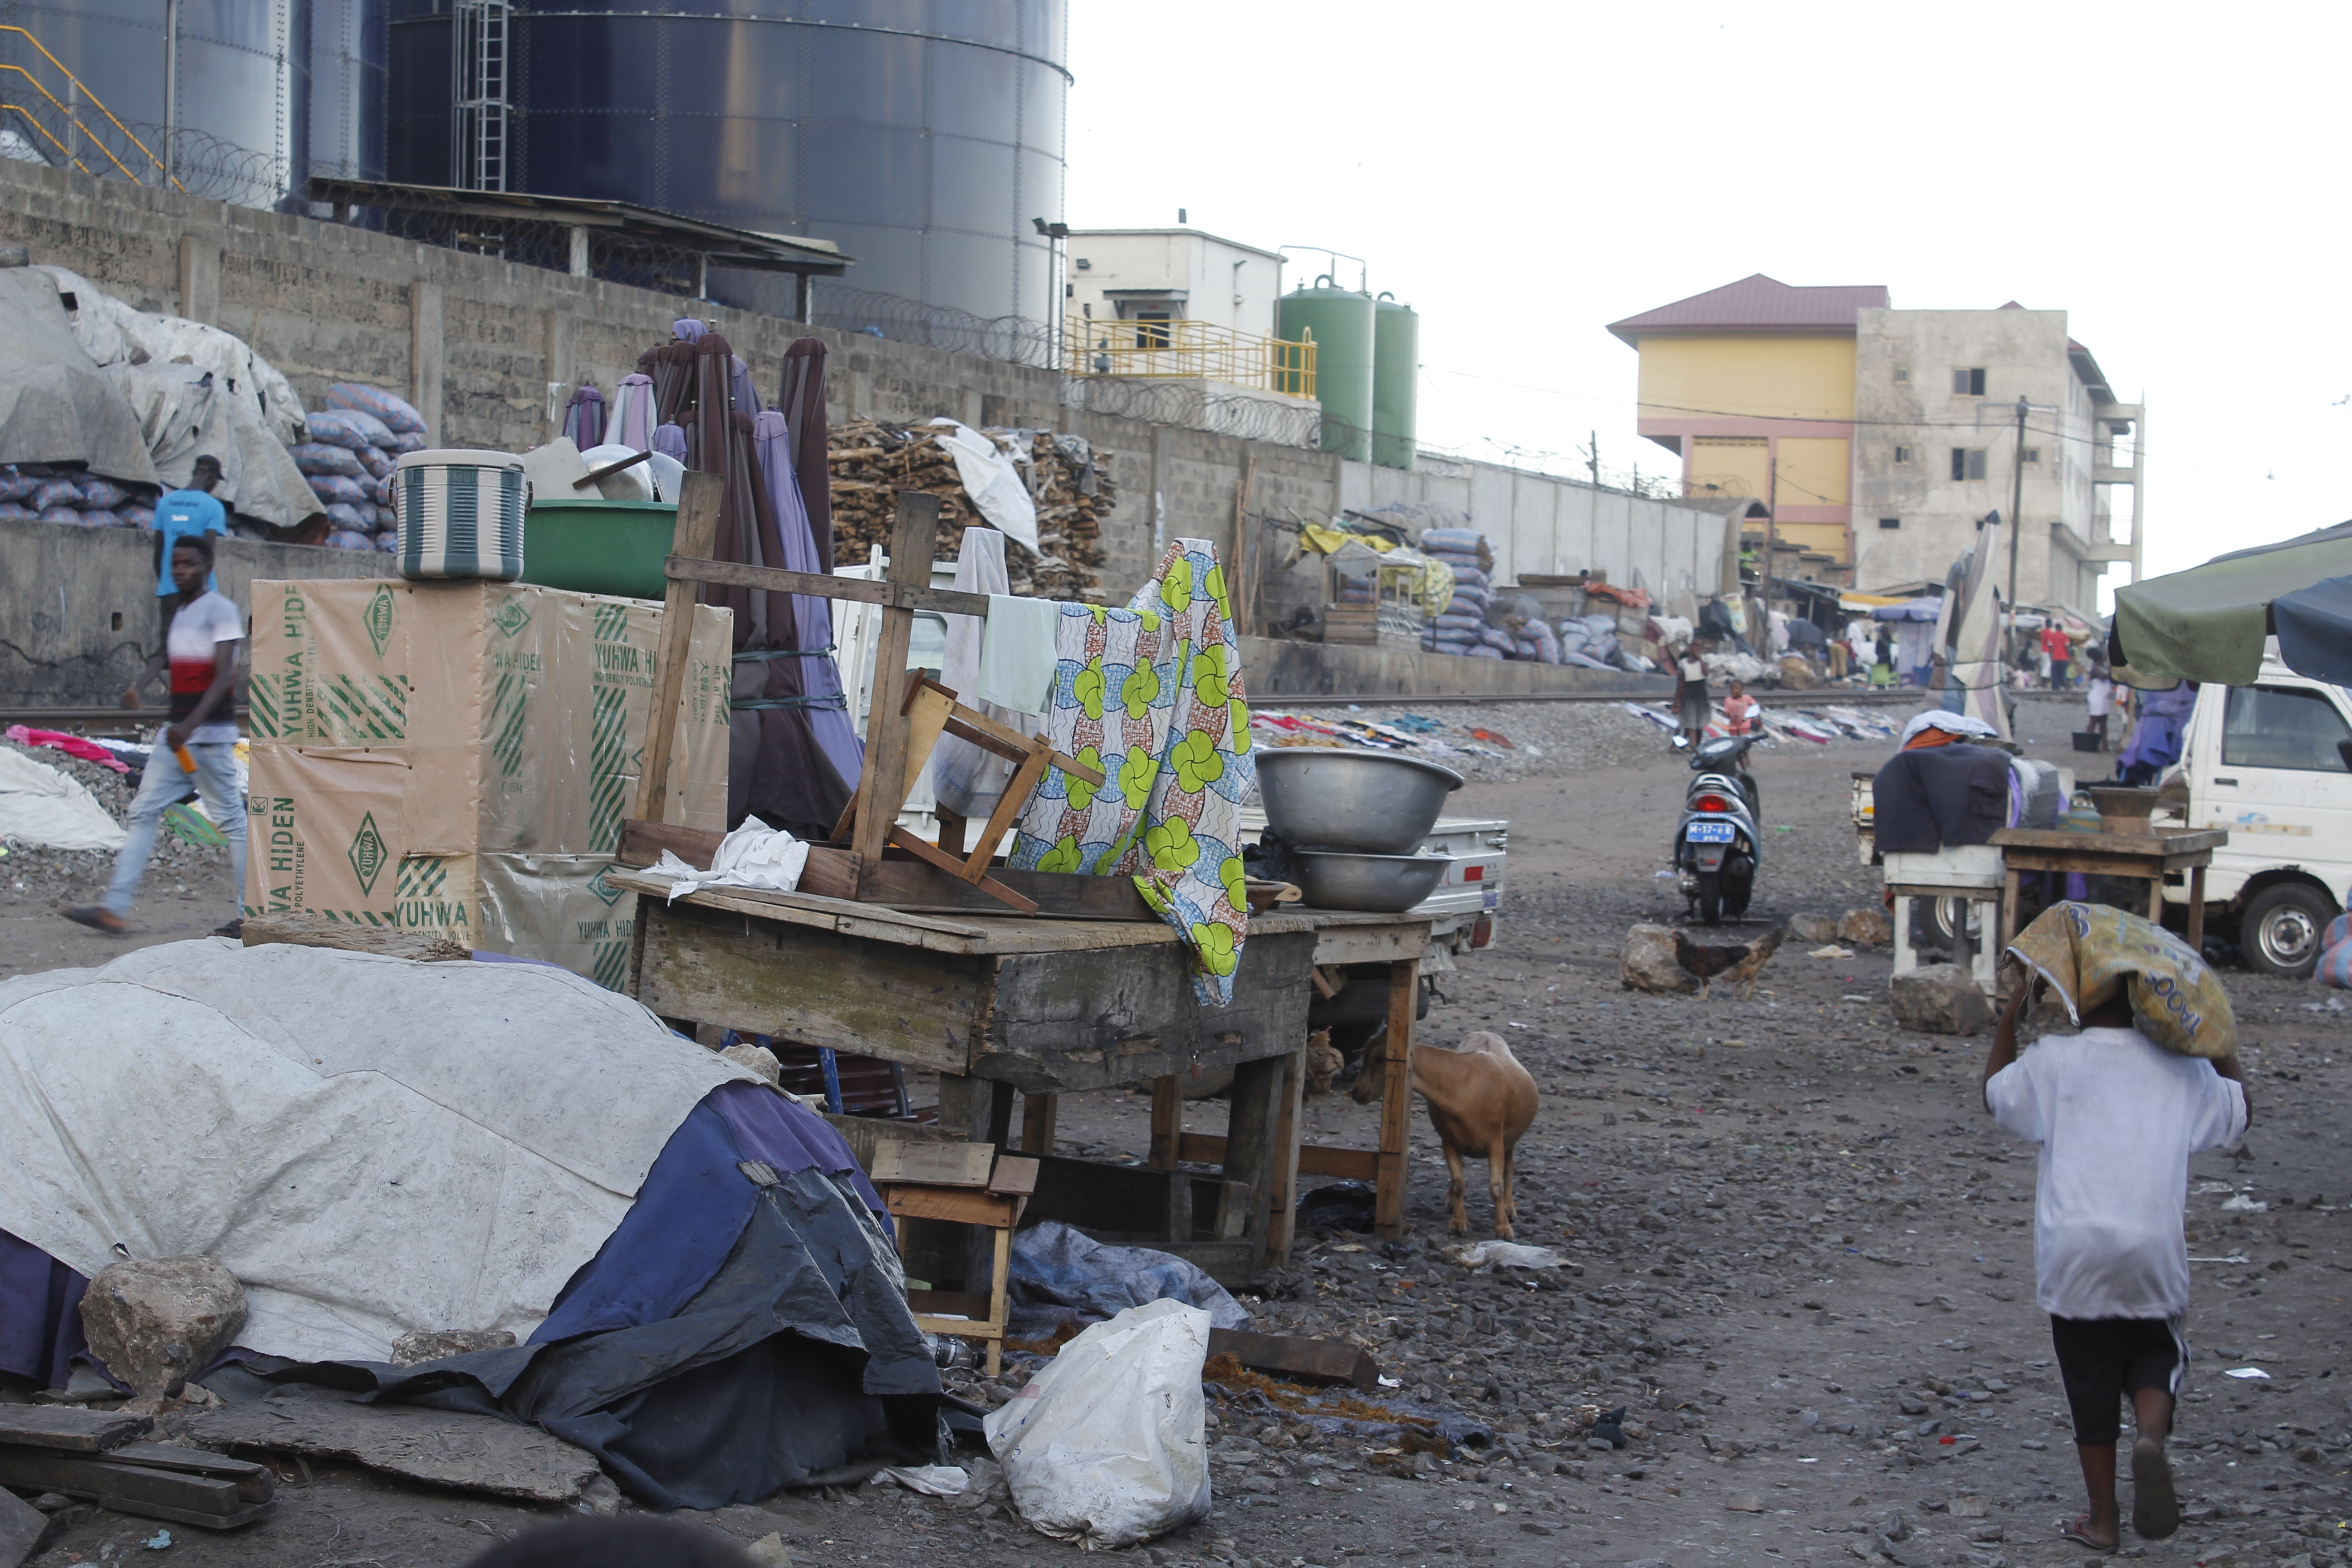 Informal settlements in Accra's Agbogbloshie slum, where residents were evicted by city authorities to make way for a railway track in Accra, Ghana,  May 26, 2019.